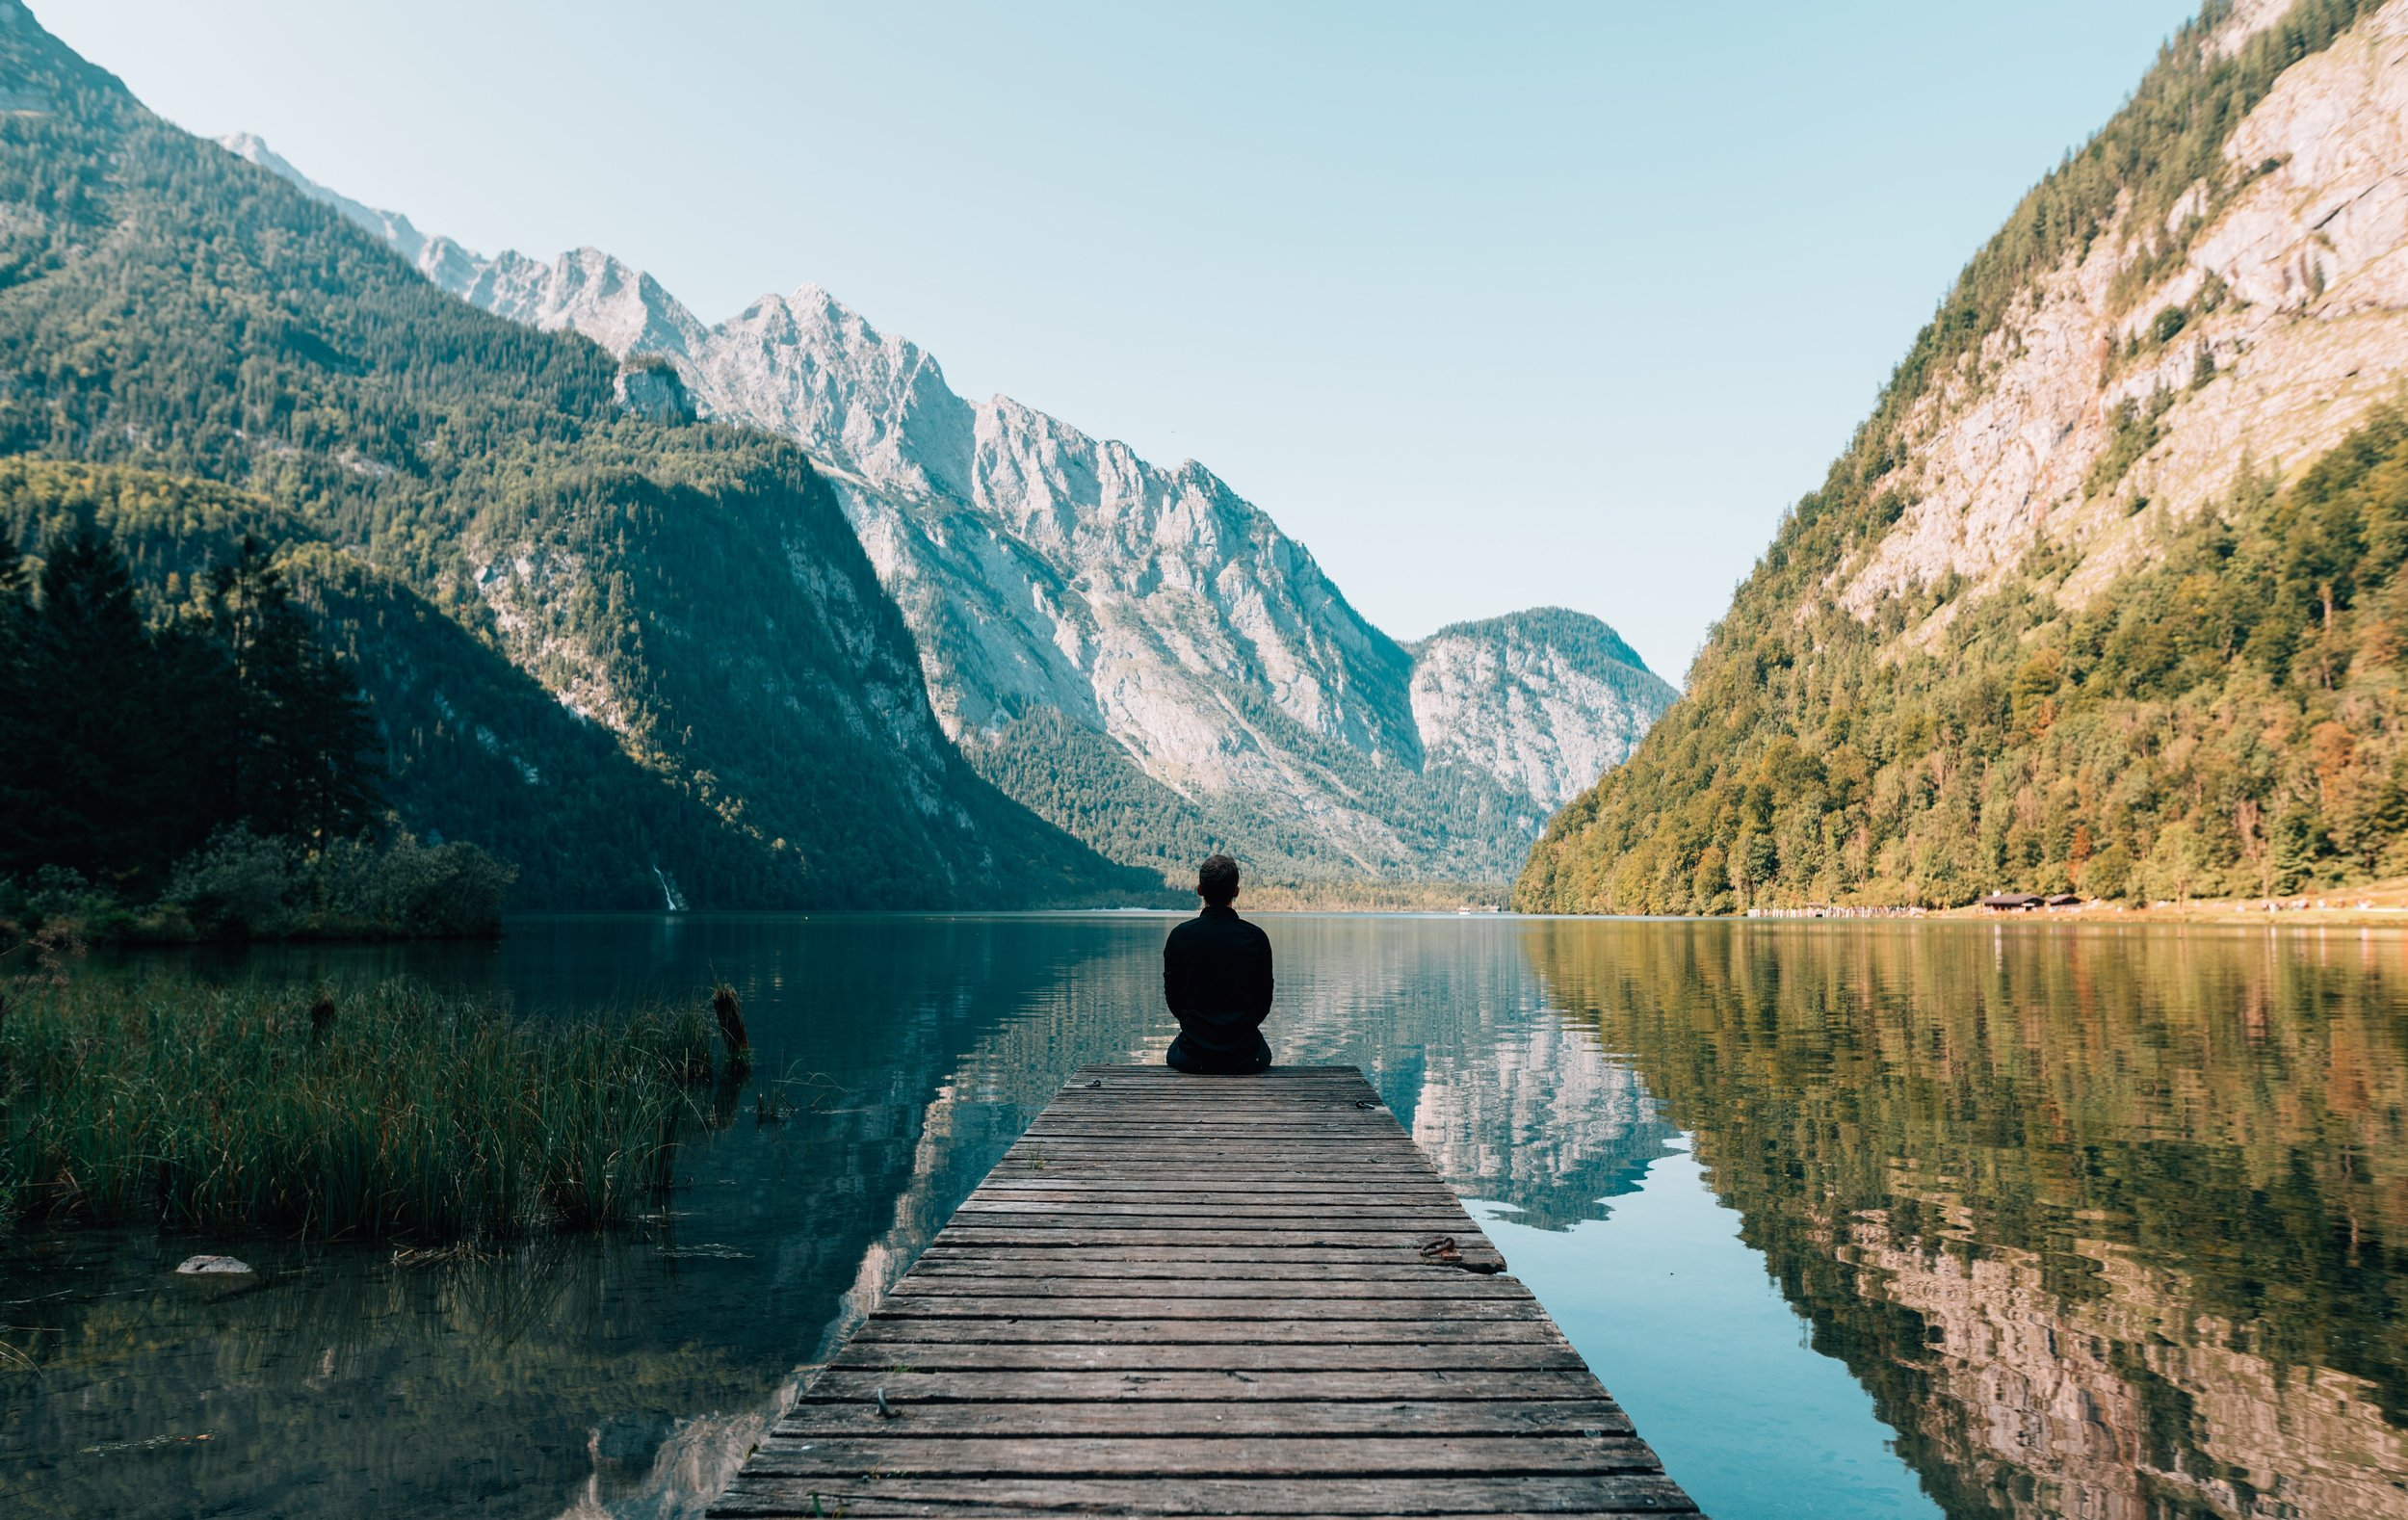 Reflecting at lake by mountains on dock.jpg